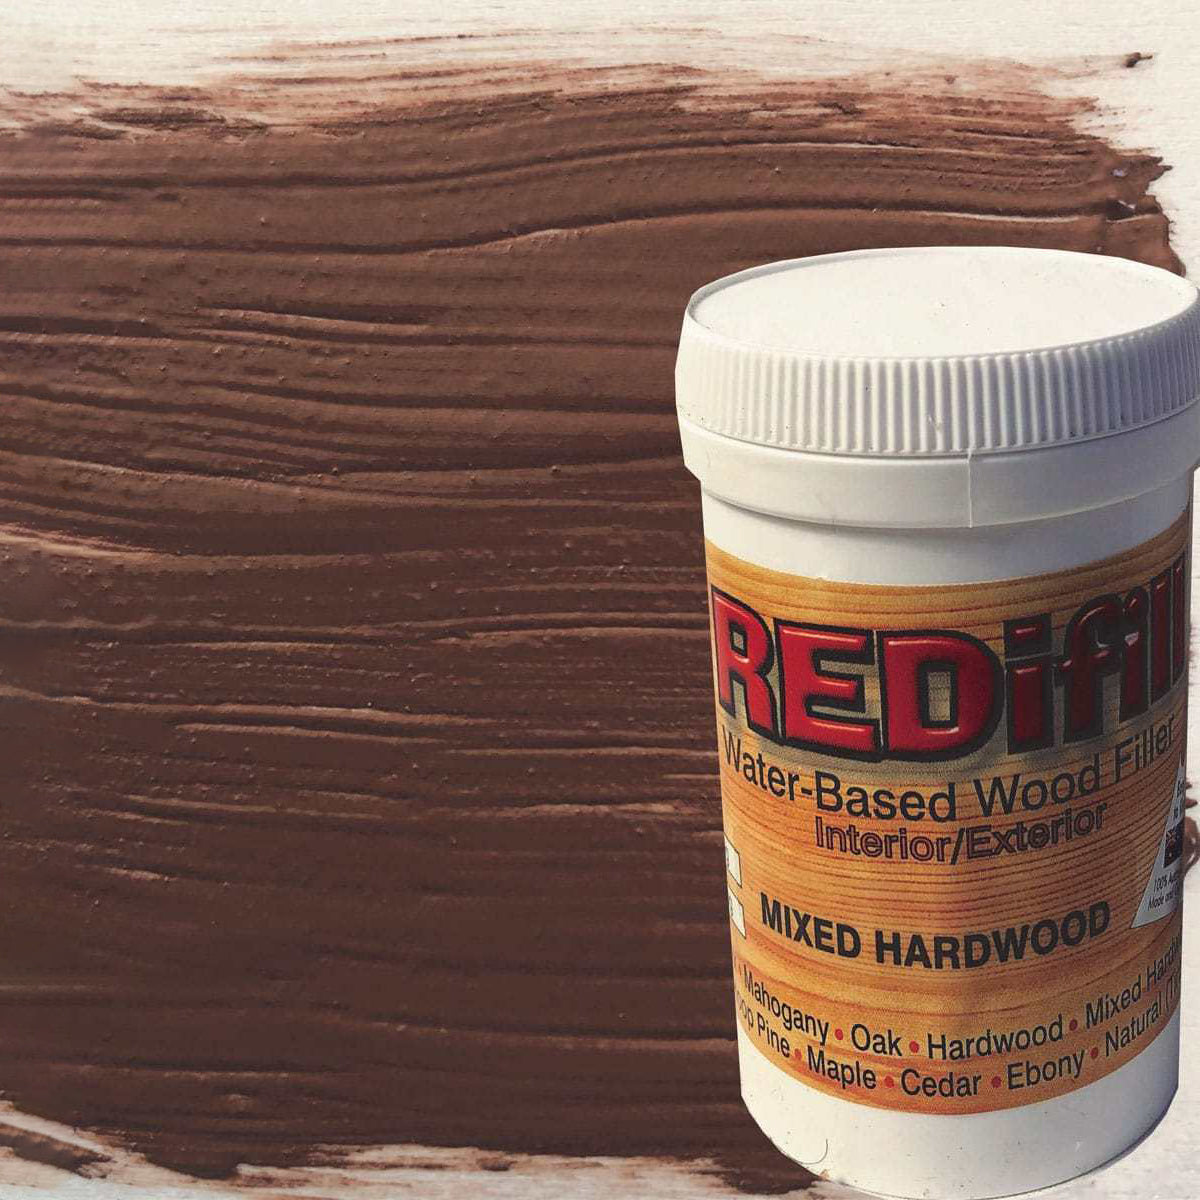 REDifill wood filler (Mixed Hardwood)